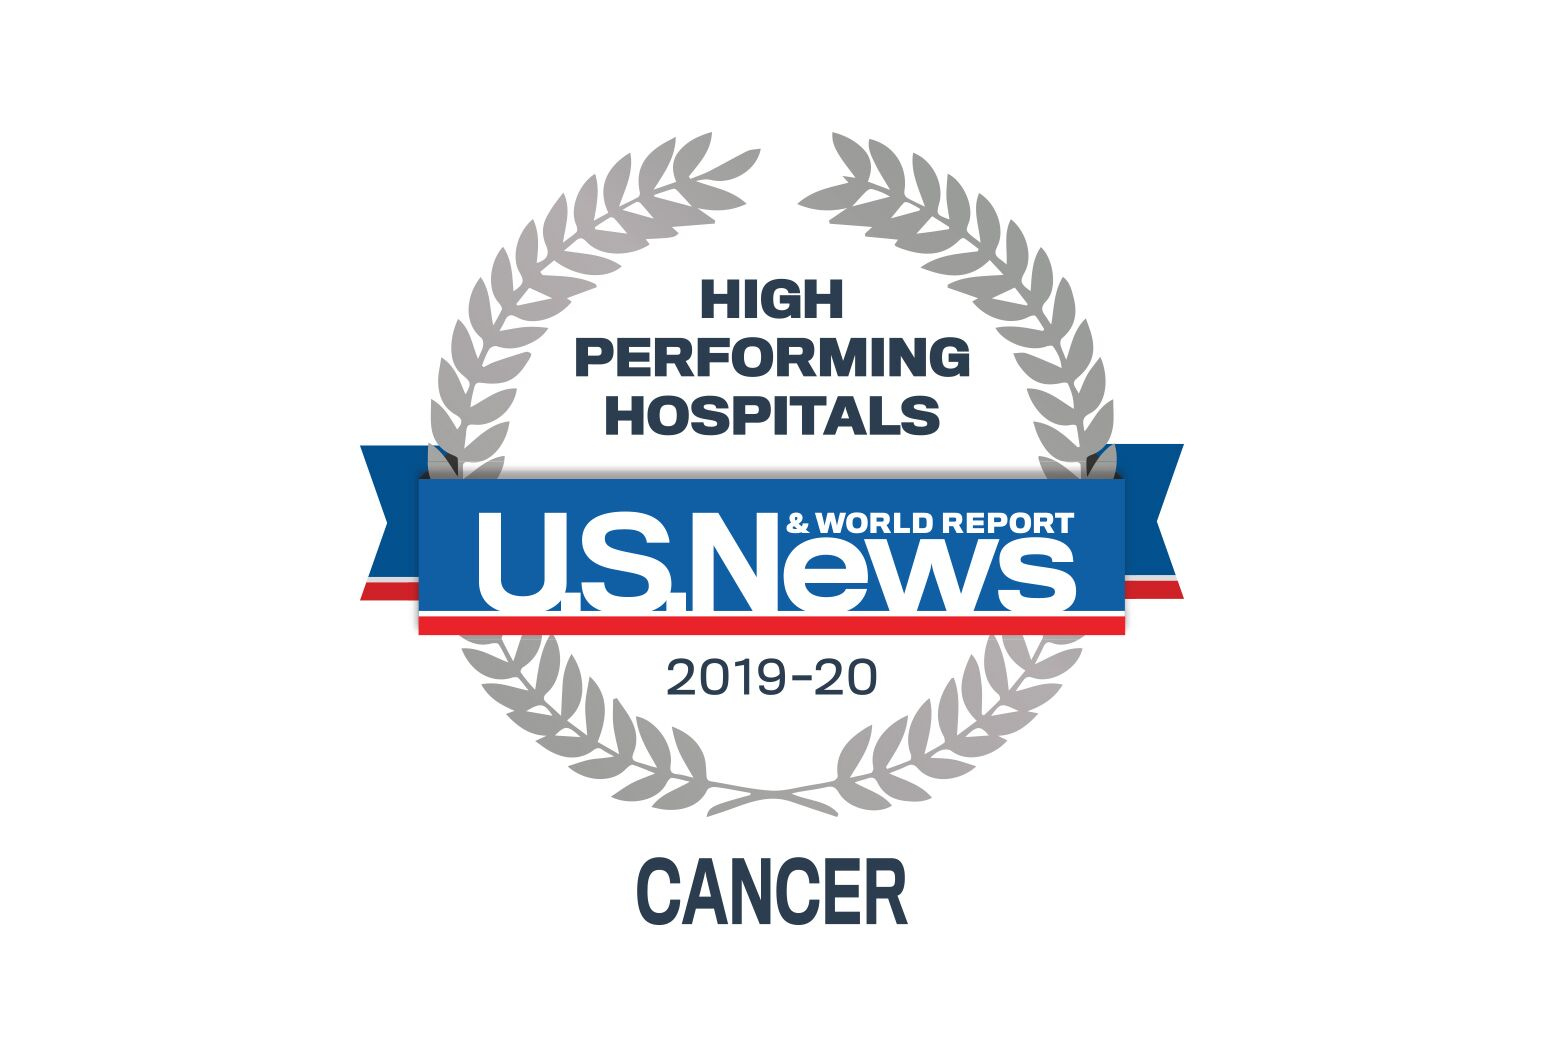 US News high performing cancer